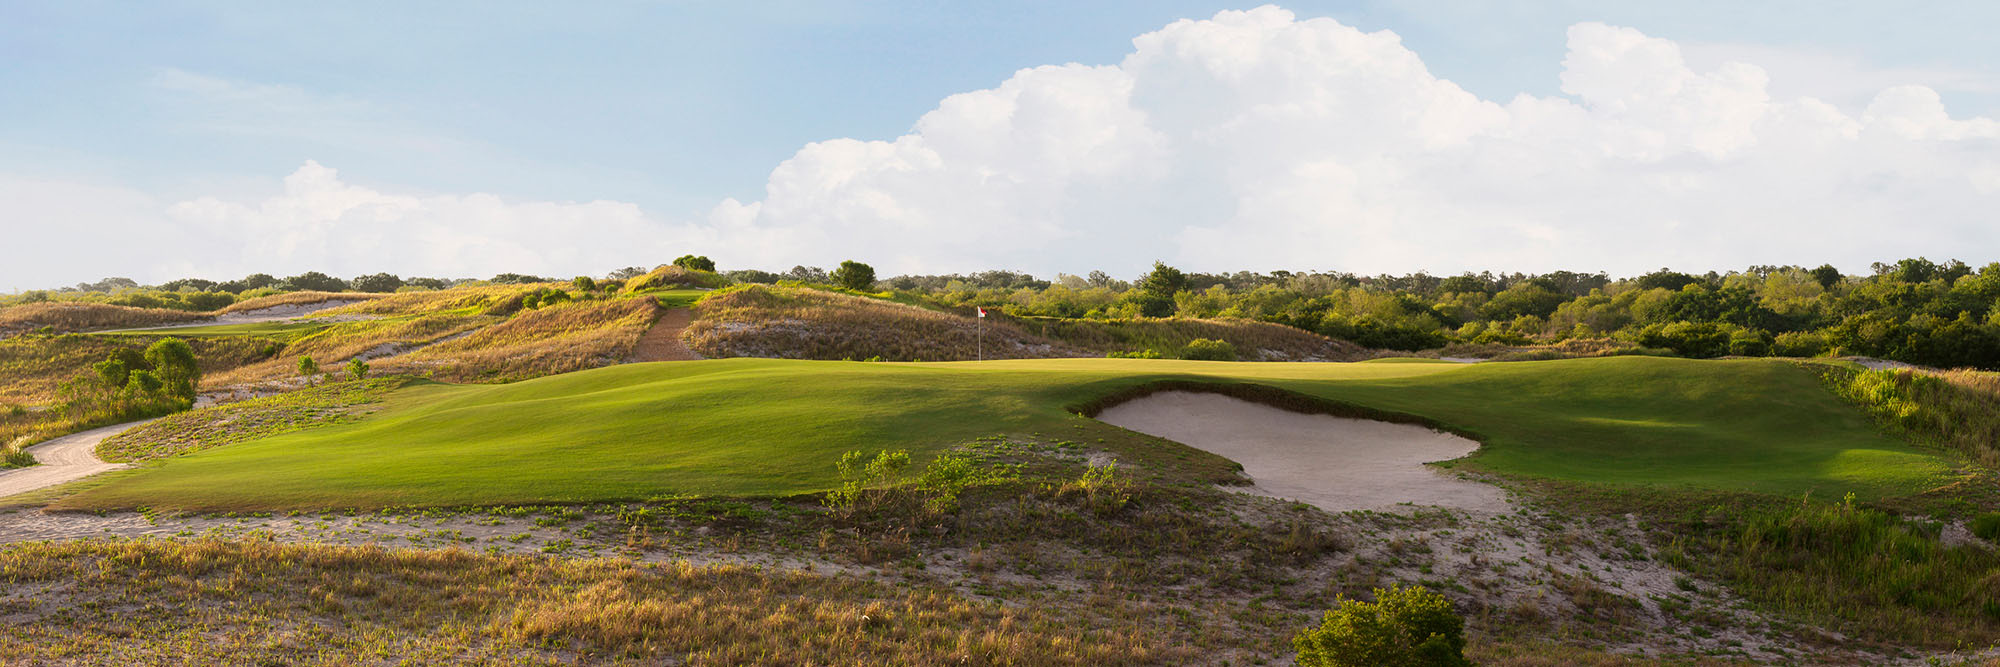 Golf Course Image - Streamsong Red No. 14